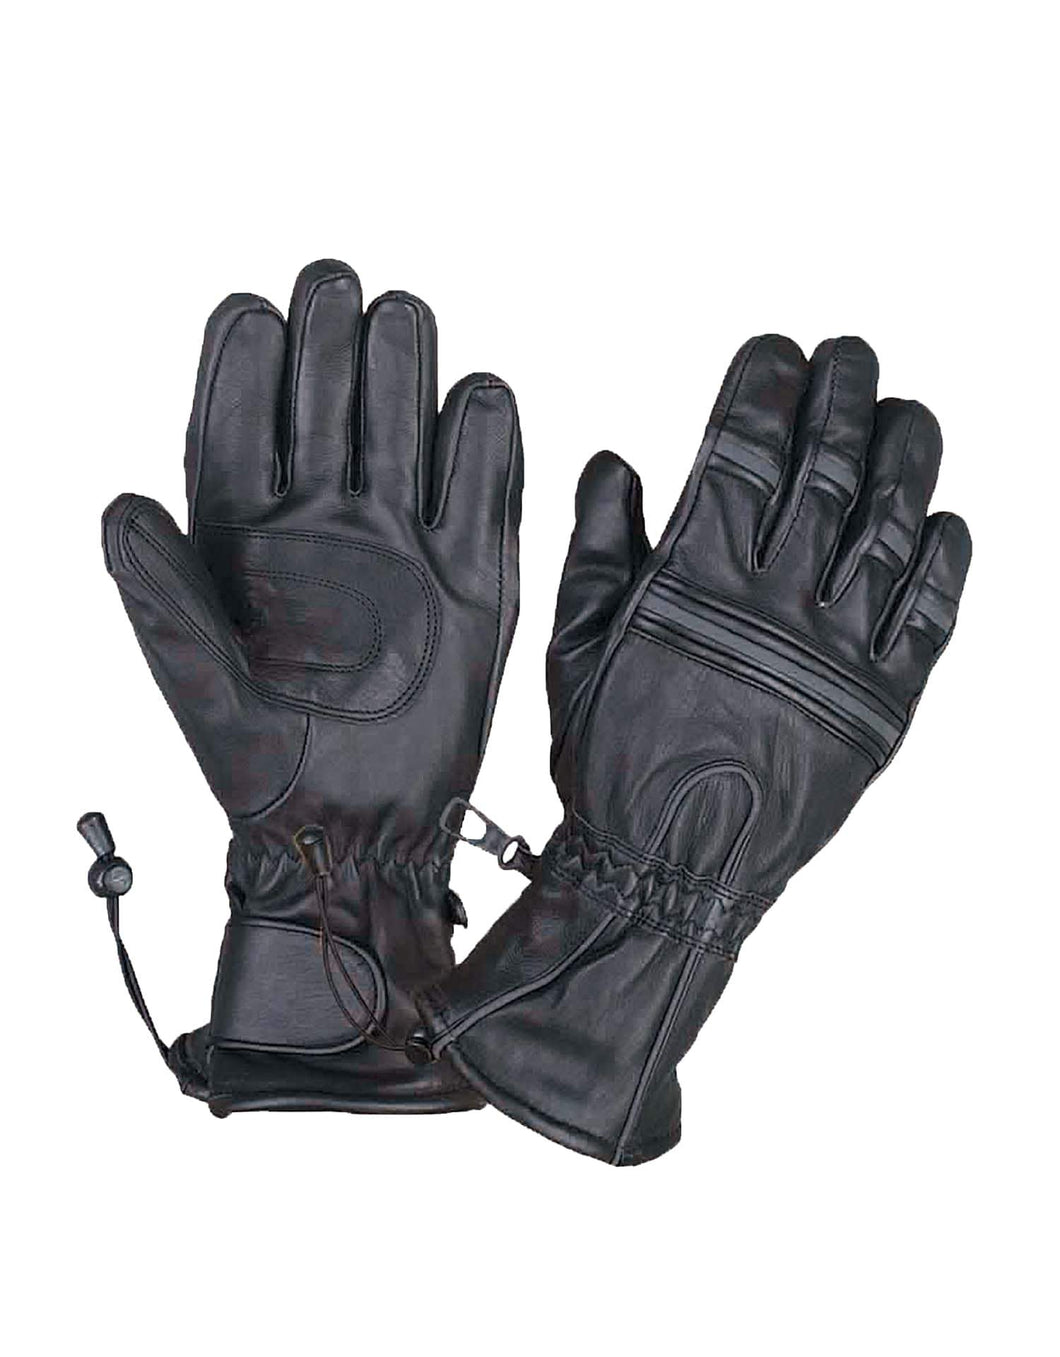 UNIK Gauntlet Leather Gloves